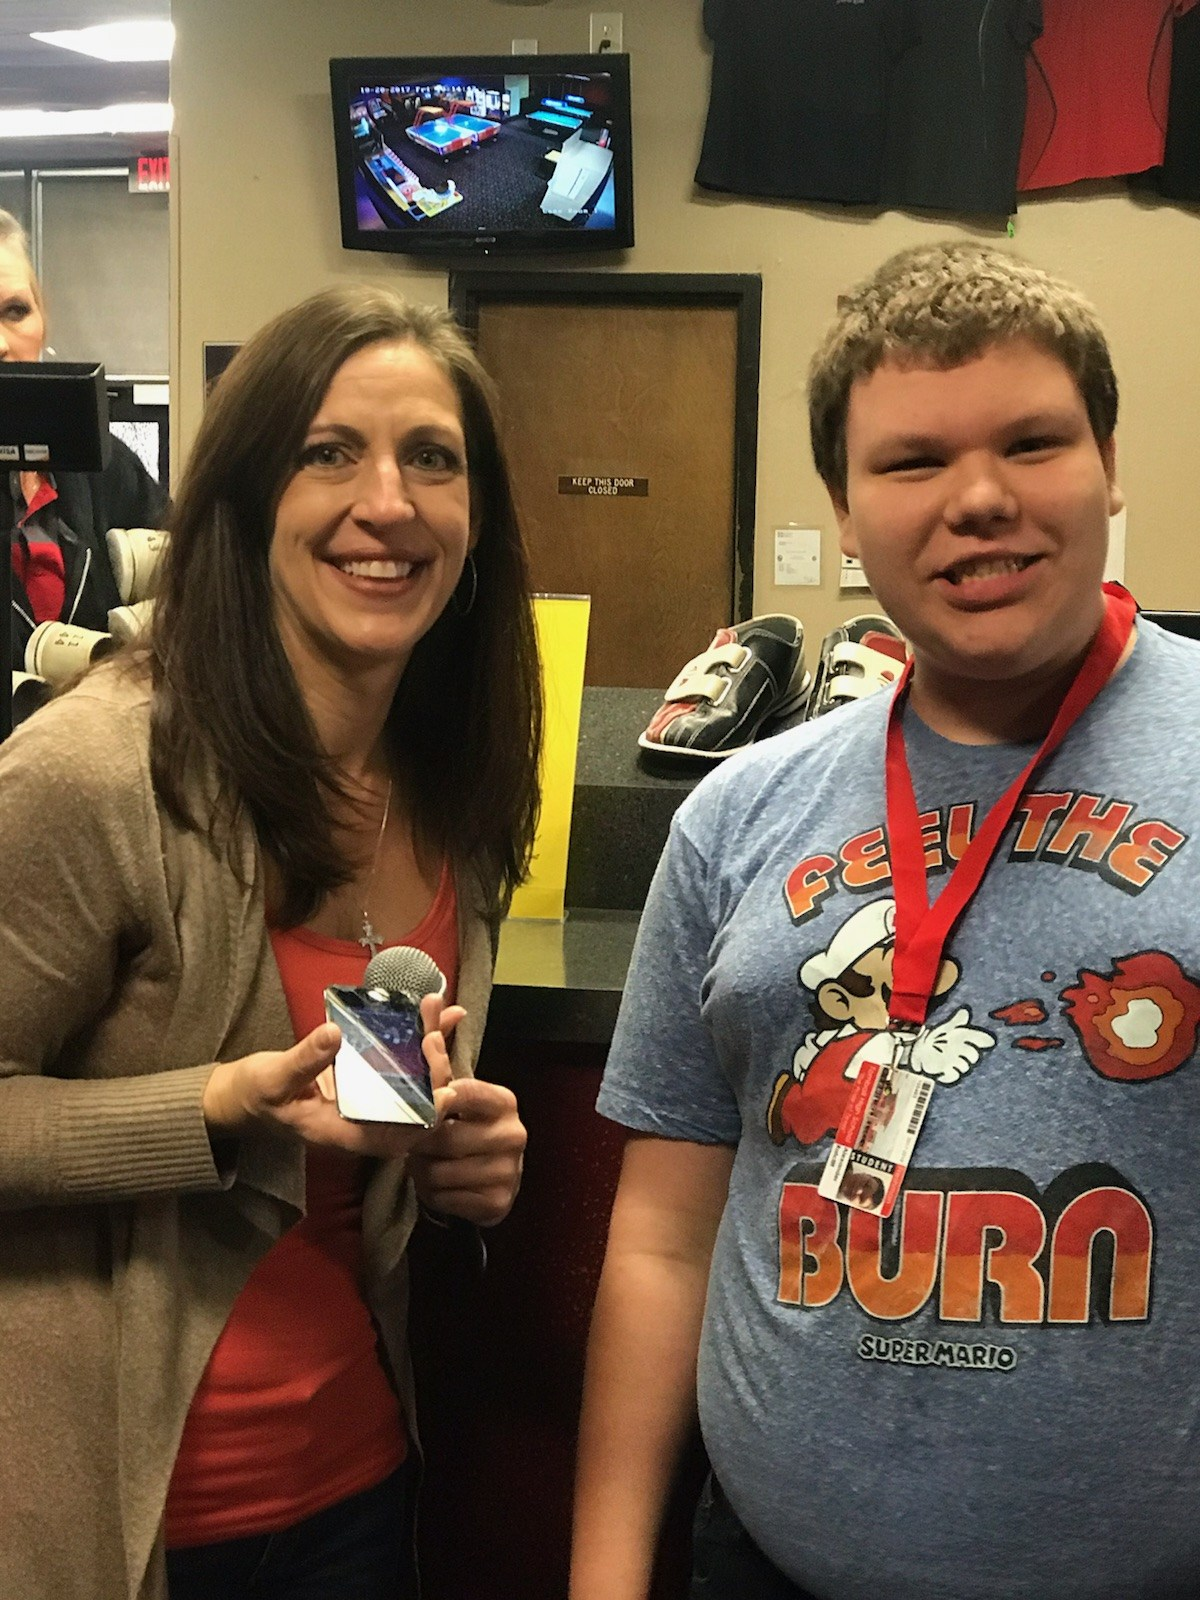 Student Support Employee standing with student with a medal from Bowling Challenge Day